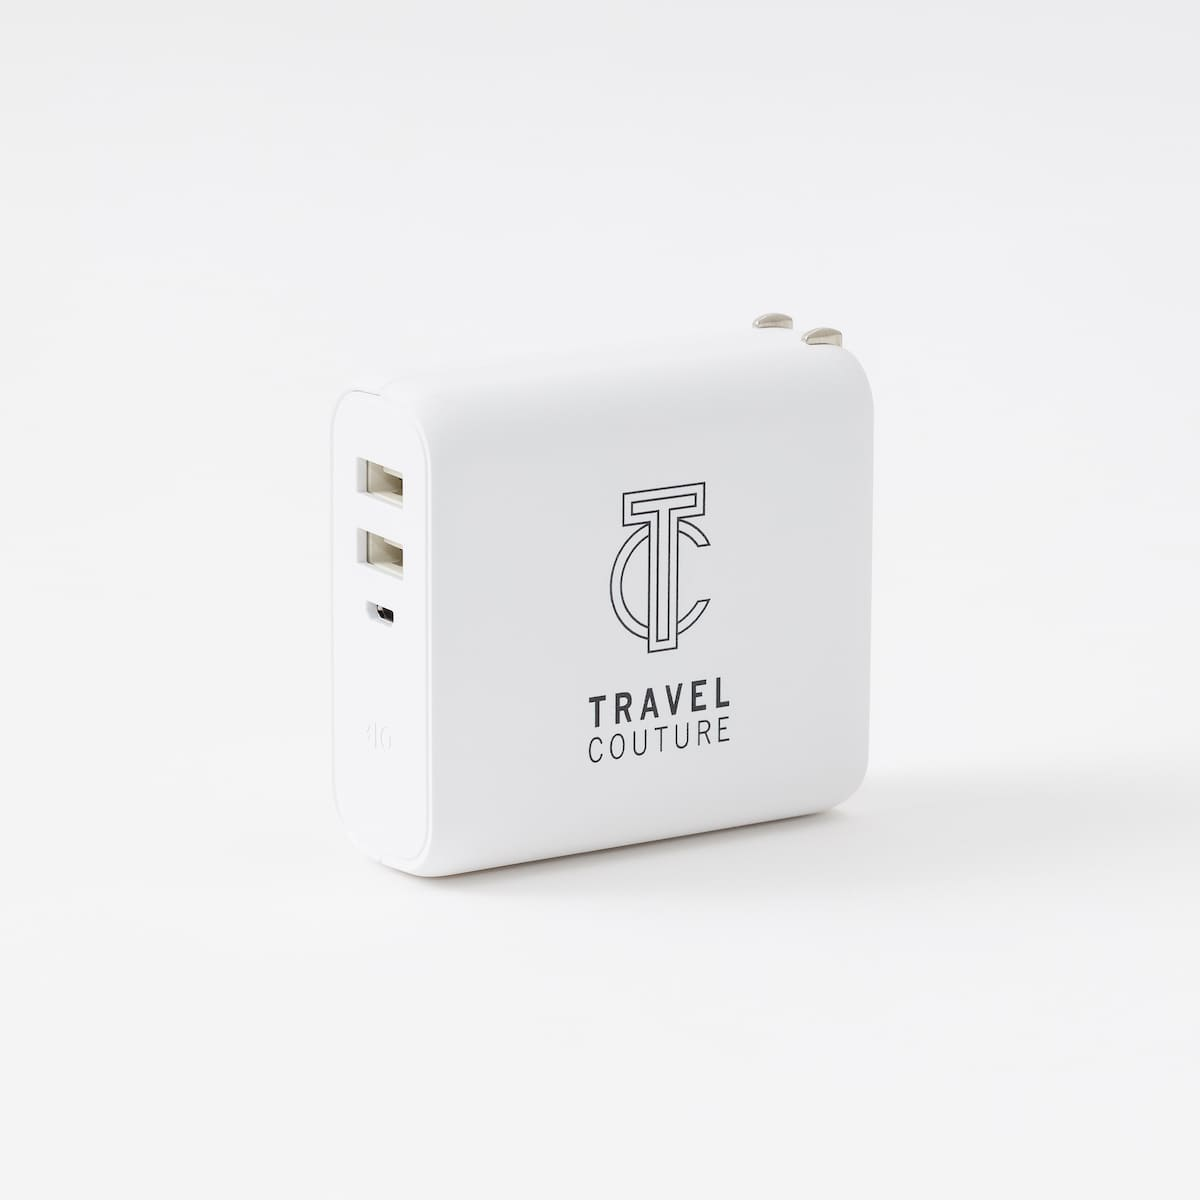 LOWERCASE 梶原由景 TRAVEL COUTURE